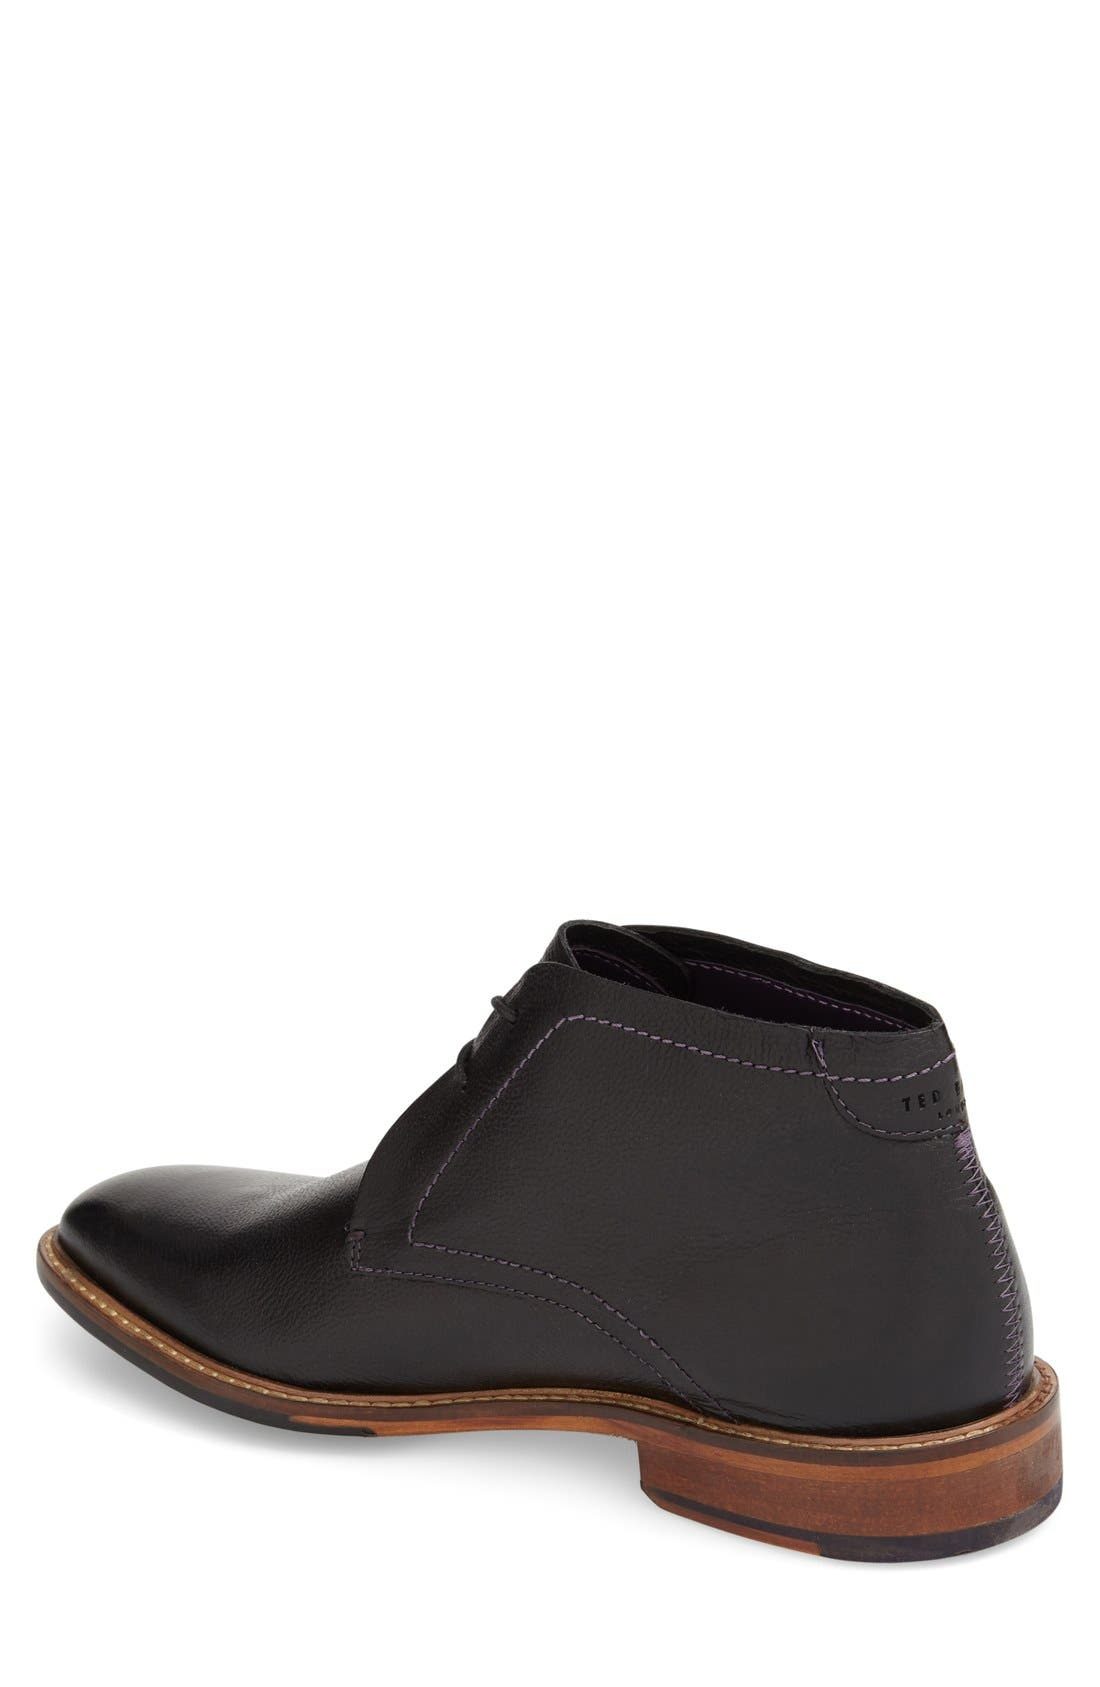 'Torsdi 4' Chukka Boot,                             Alternate thumbnail 2, color,                             Black Leather